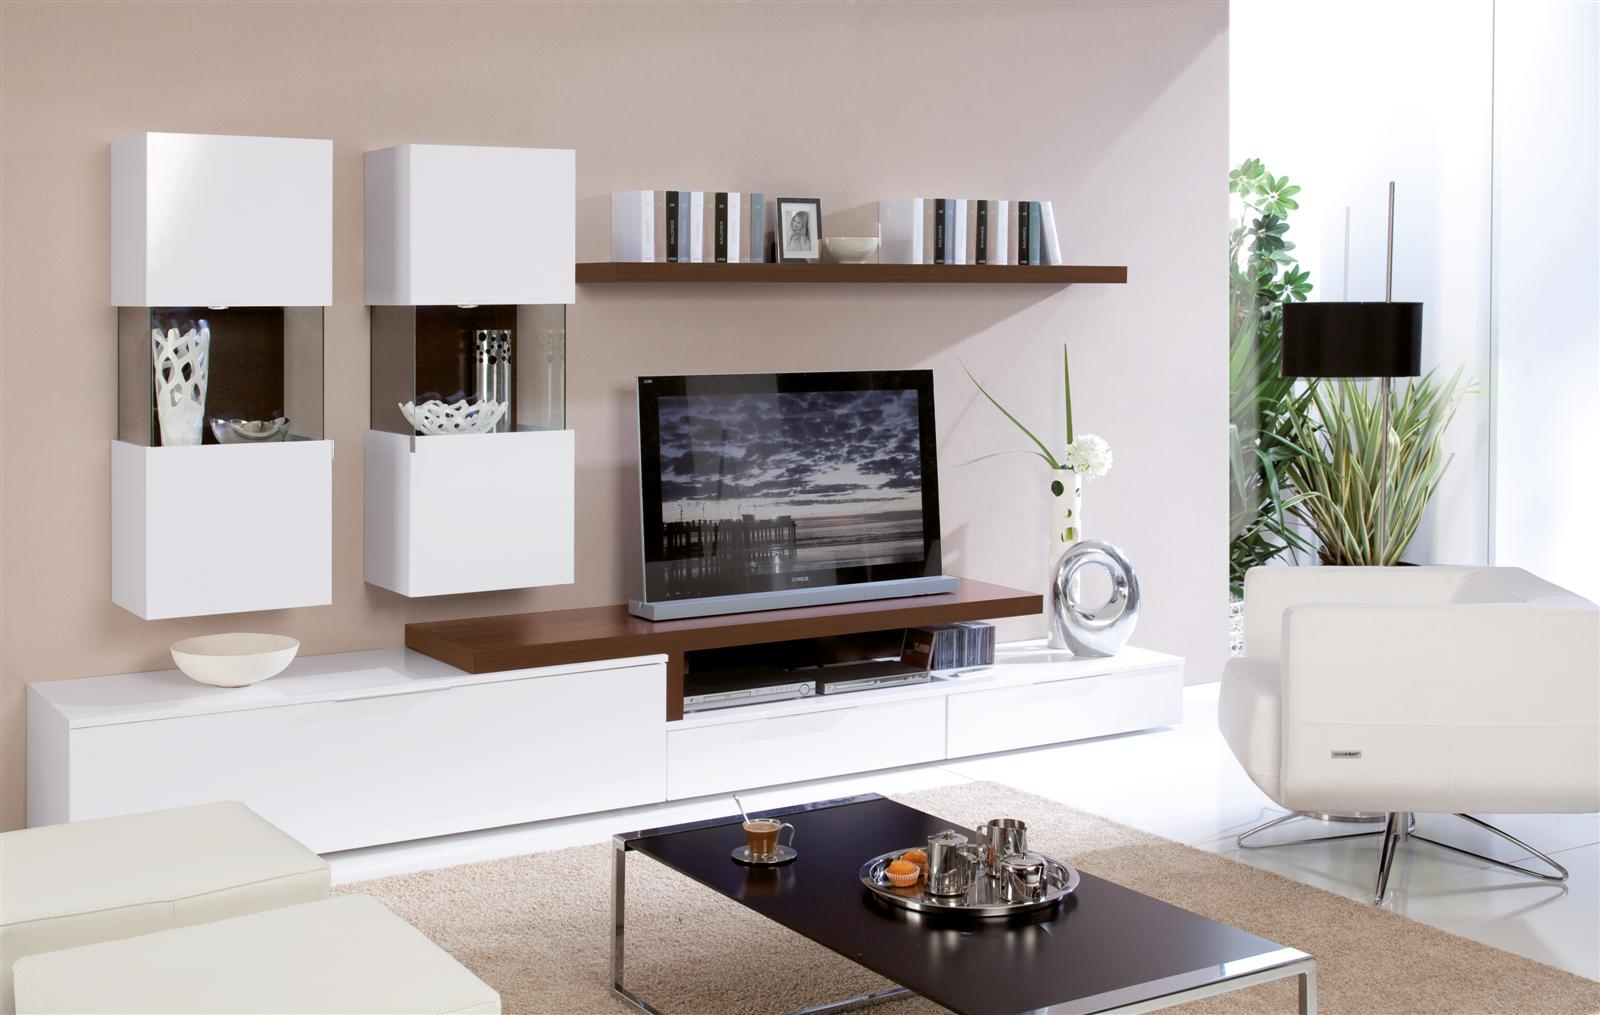 20 modern tv unit design ideas for bedroom living room for Modern tv unit design ideas